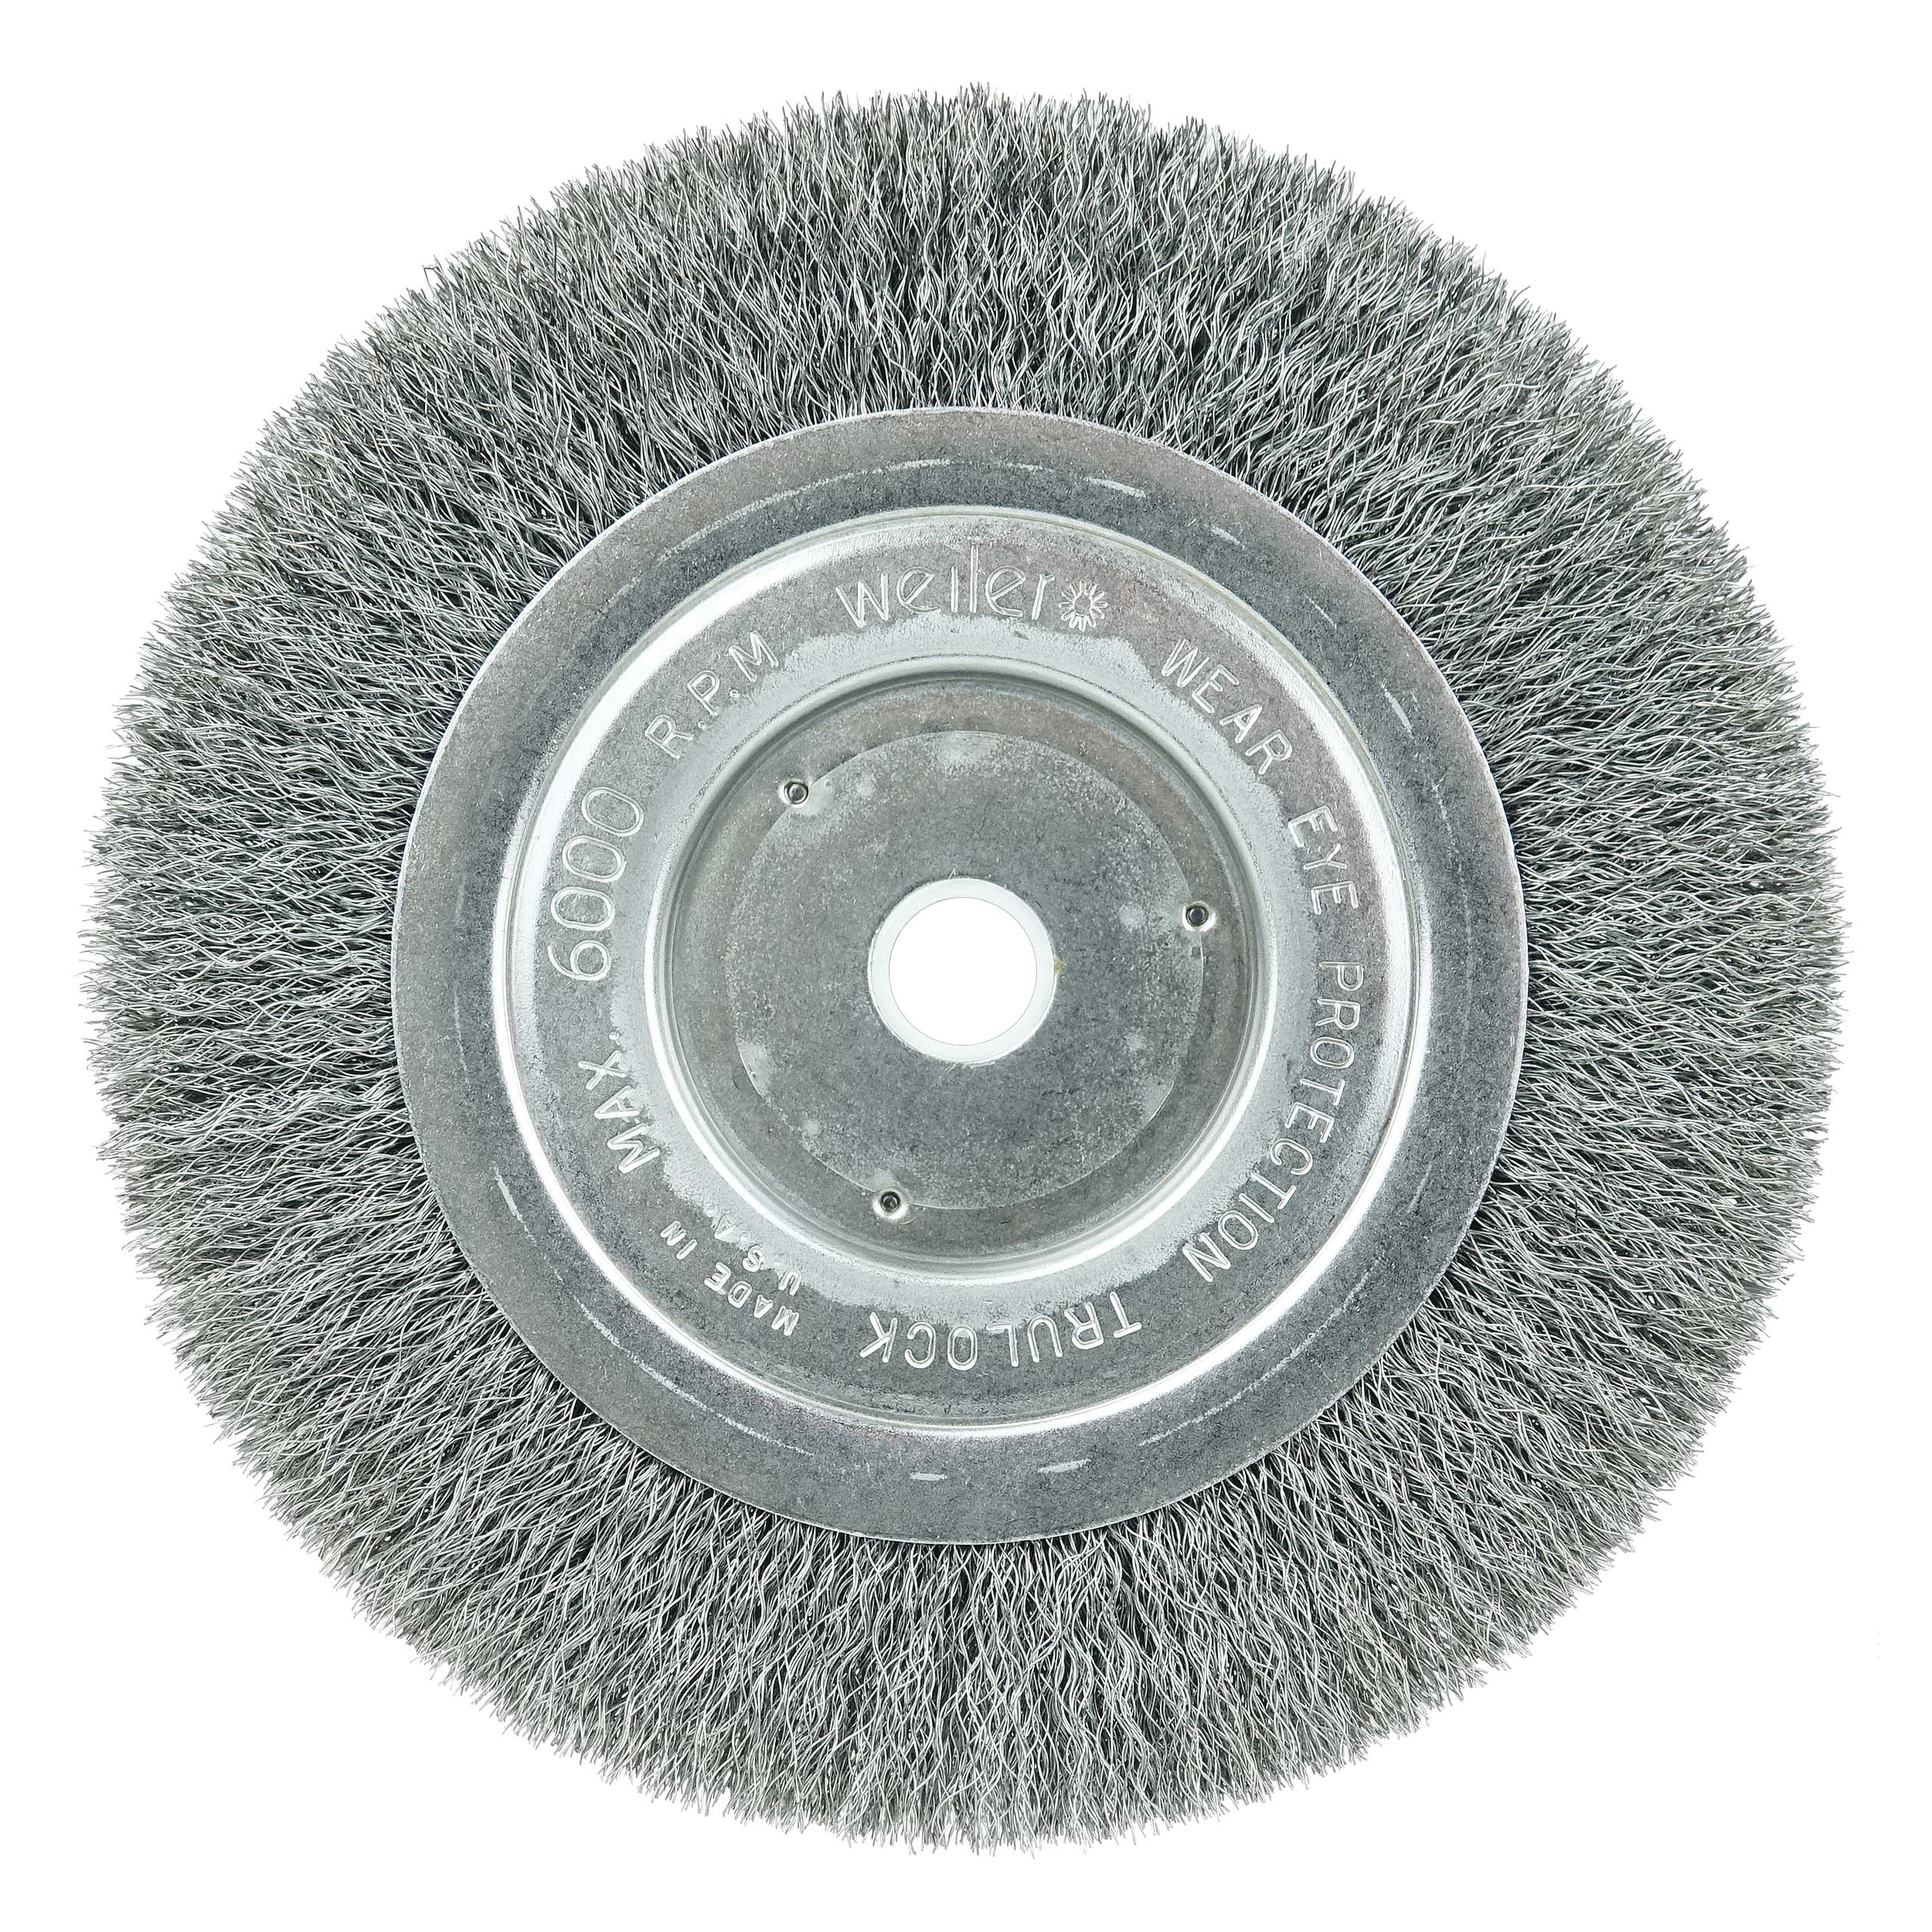 Weiler® 01168 Narrow Face Wheel Brush, 8 in Dia Brush, 3/4 in W Face, 0.0118 in Dia Crimped Filament/Wire, 3/4 in Arbor Hole